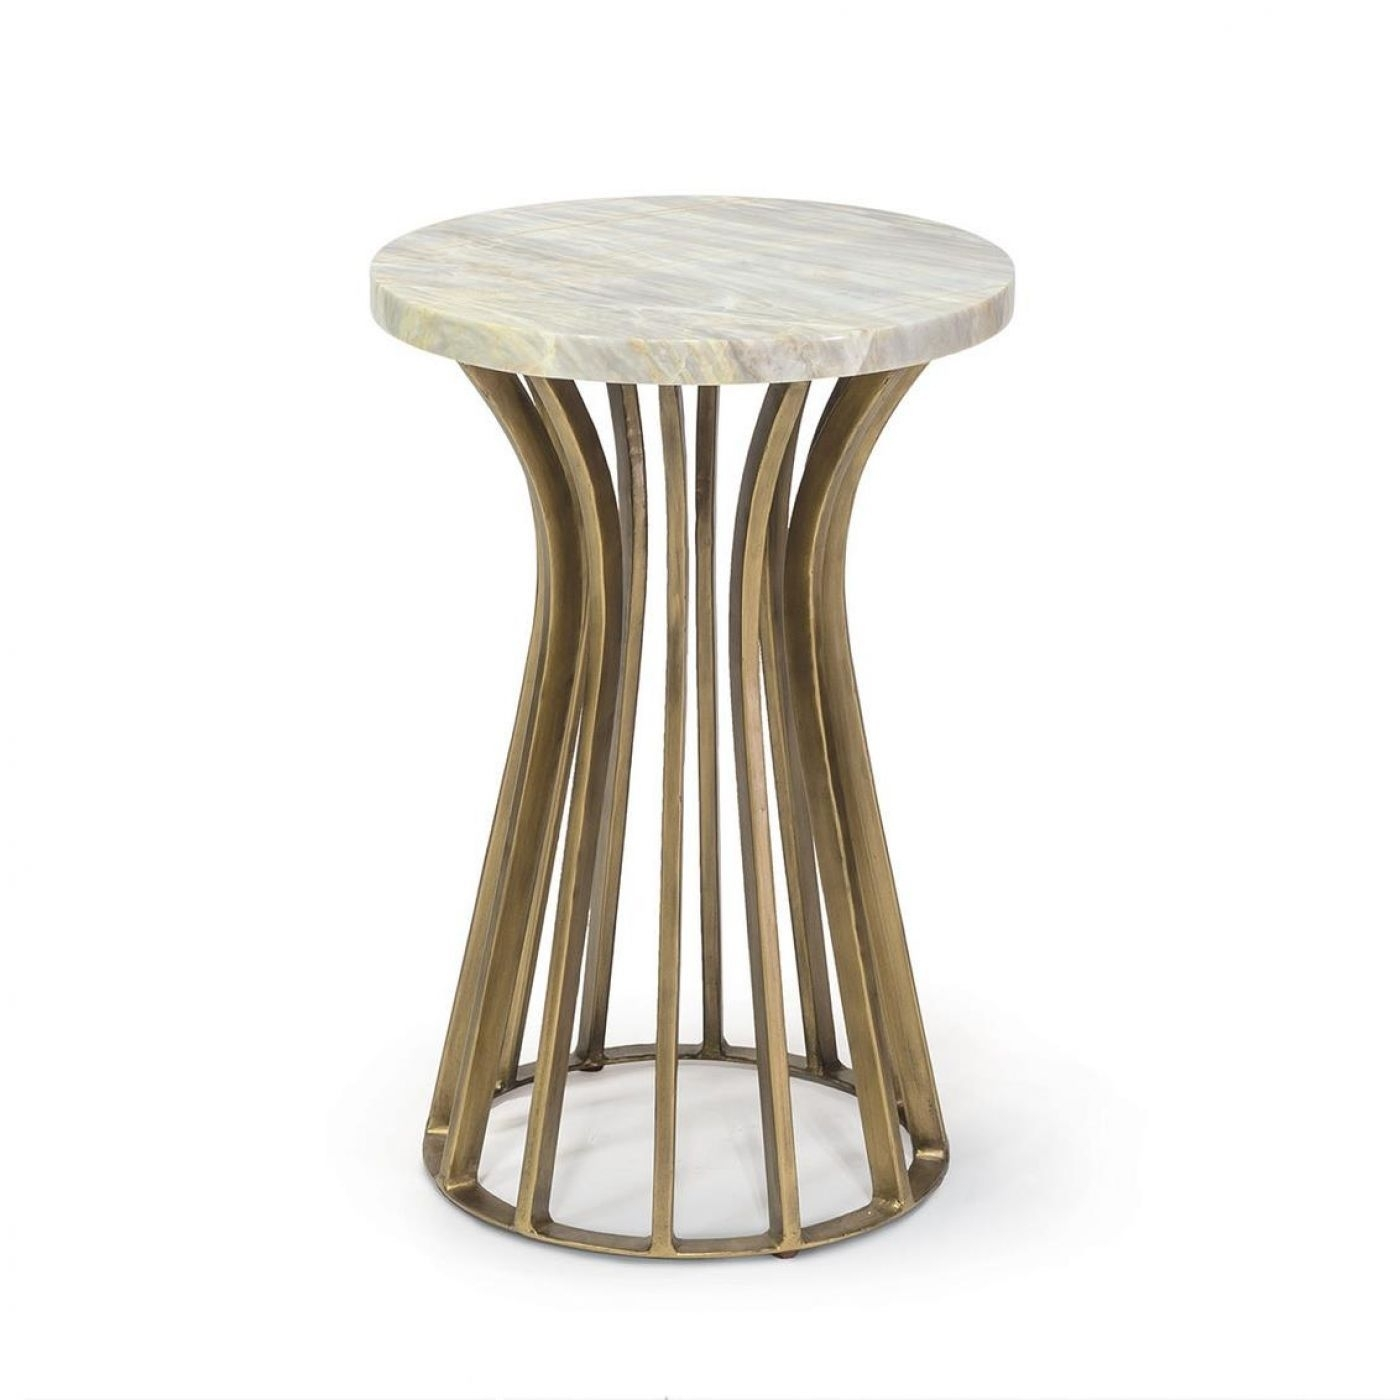 A Gold Wrought Iron Side Table Featuring A Marble Top. | Side Tables within Jackson Marble Side Tables (Image 3 of 30)